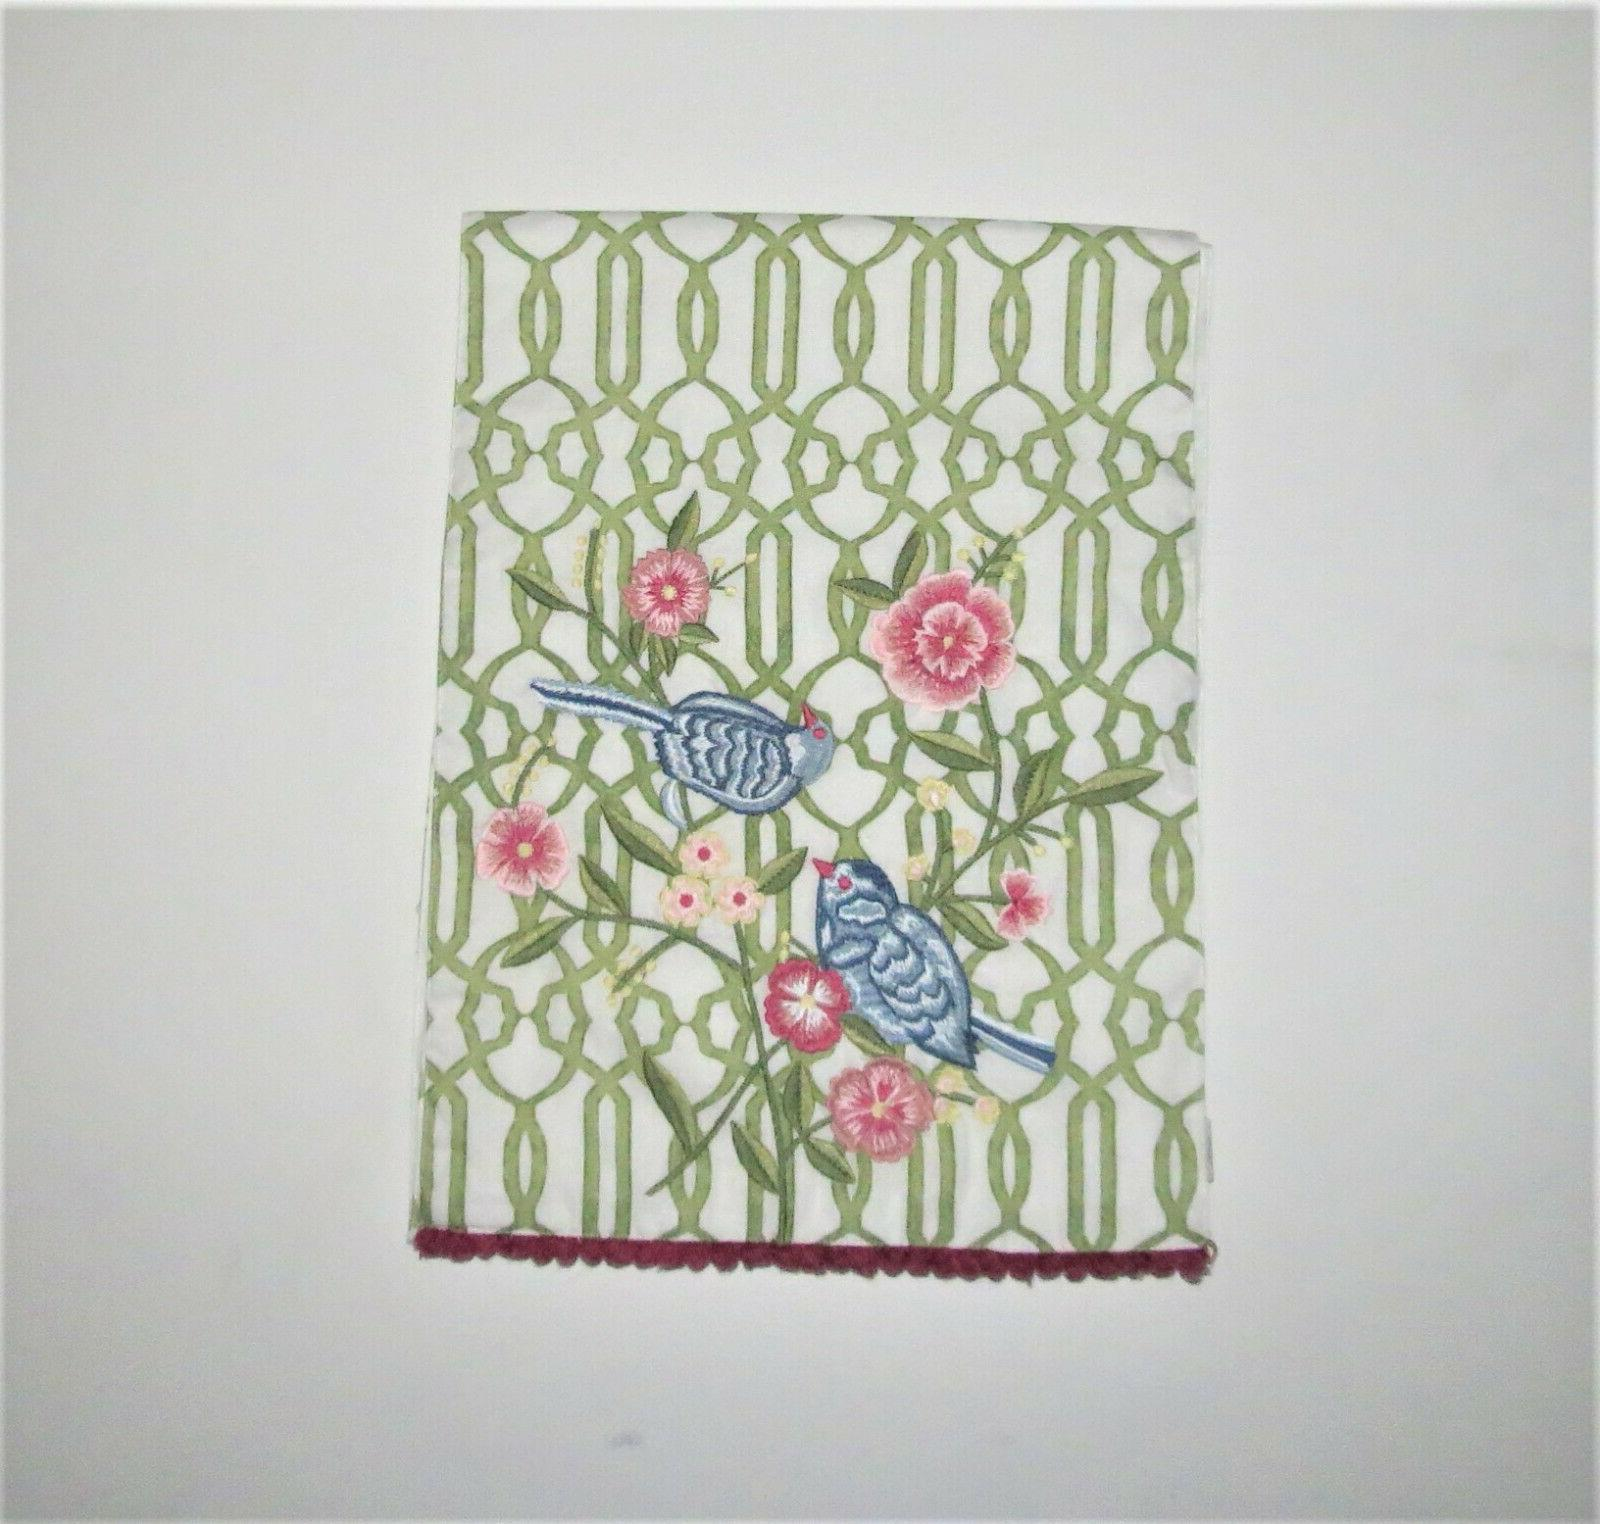 Pier One EMBROIDERED TABLE RUNNER WITH